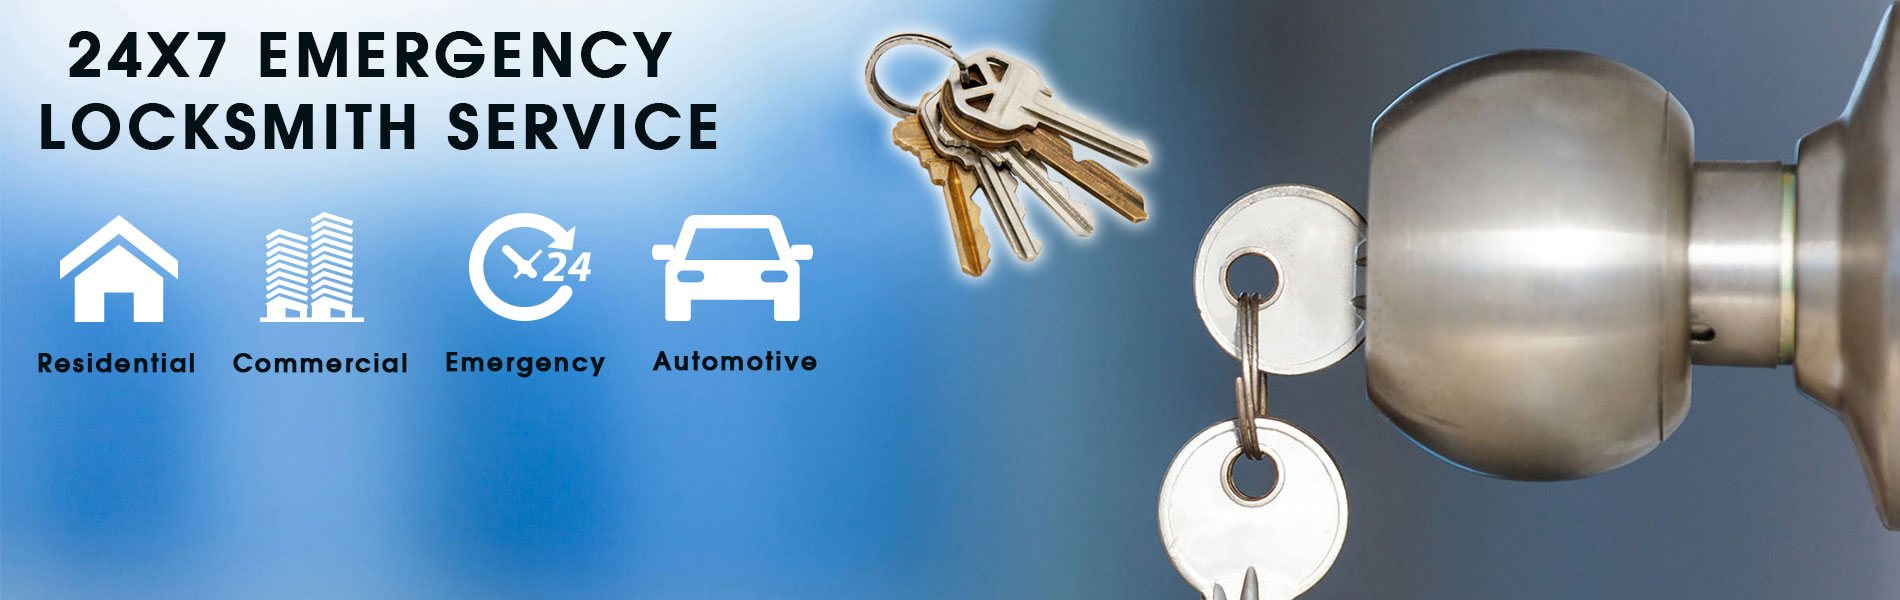 Golden Locksmith Services Daytona Beach, FL 386-319-1123